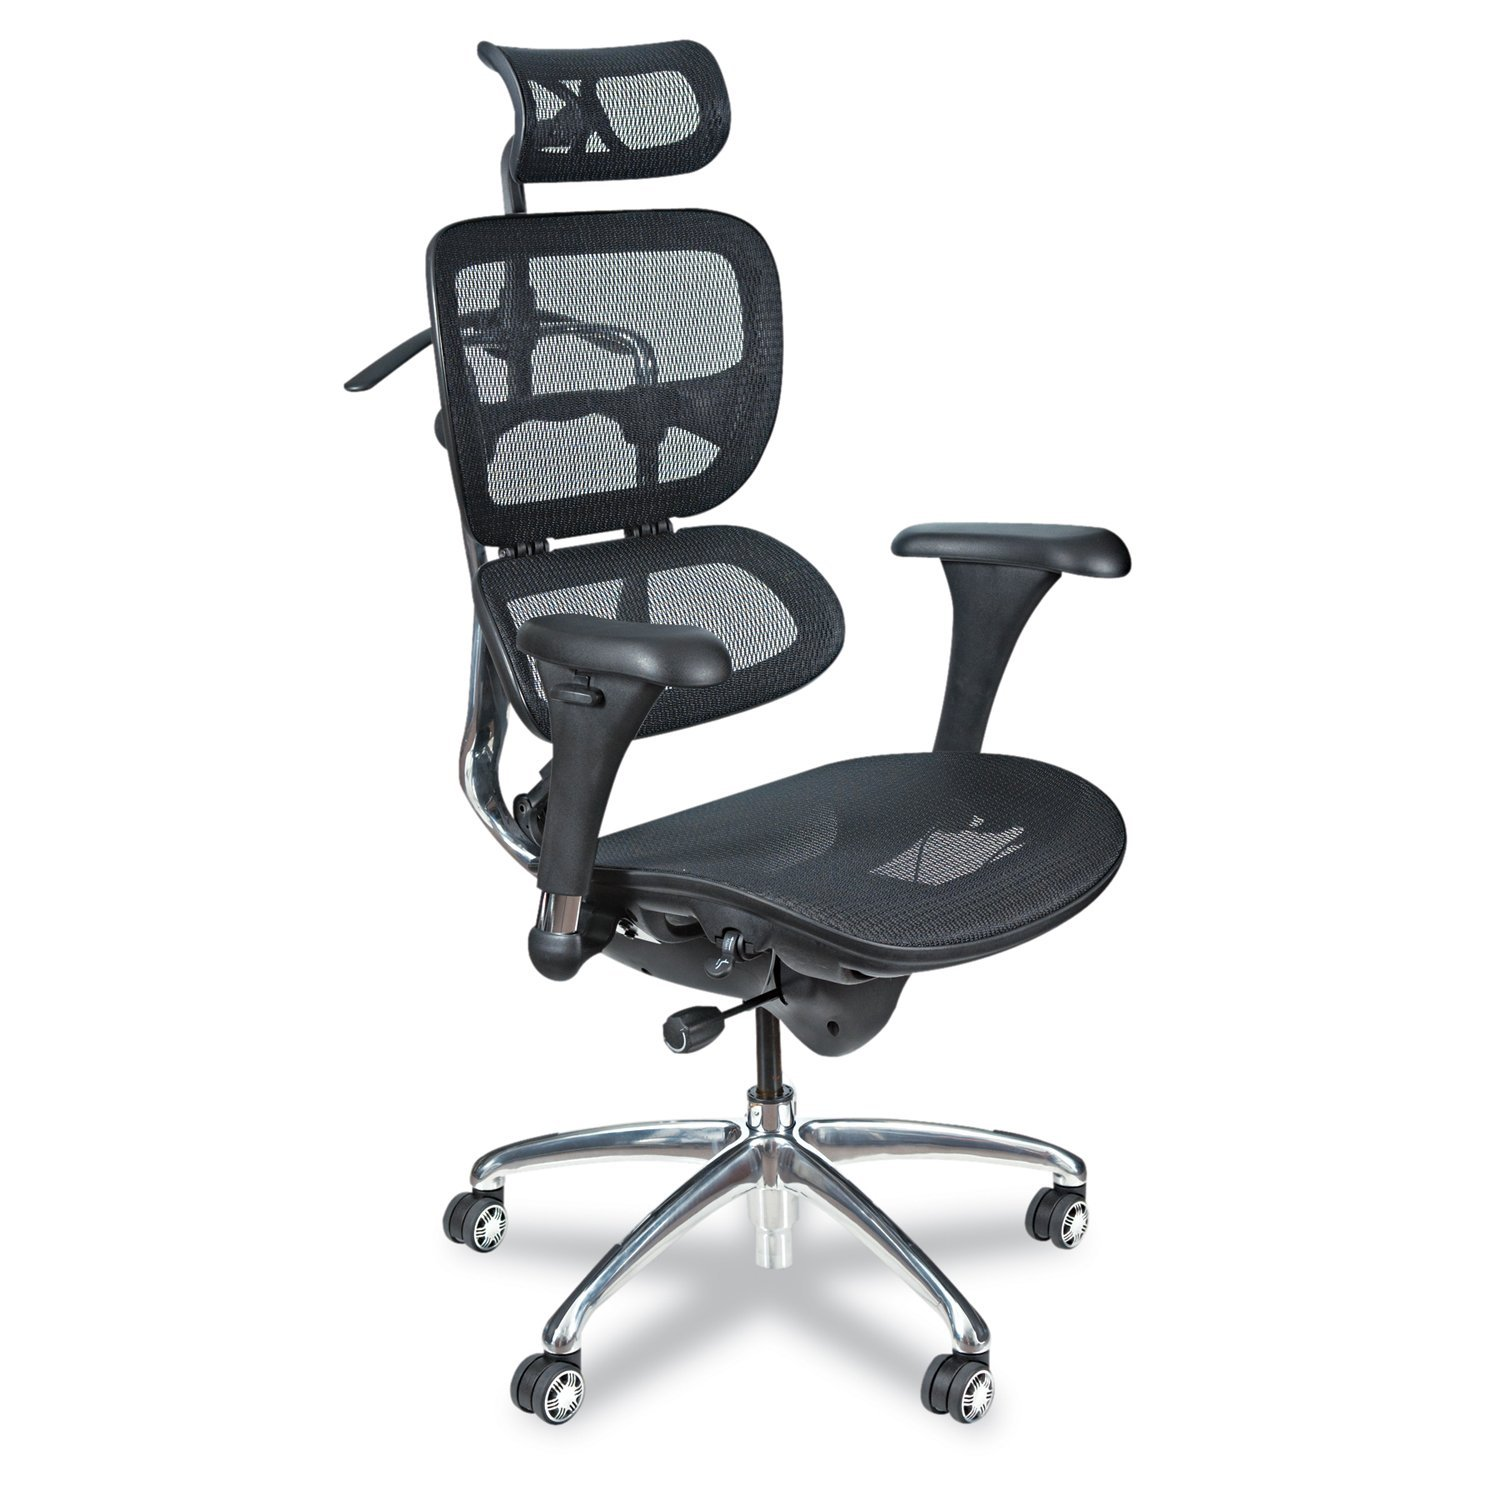 Good office chairs ergonomic - Of Course That S Very Important But The Truth Is That Purchasing A Chair That Provides All Around Comfort And Ergonomic Support To Your Entire Body Not